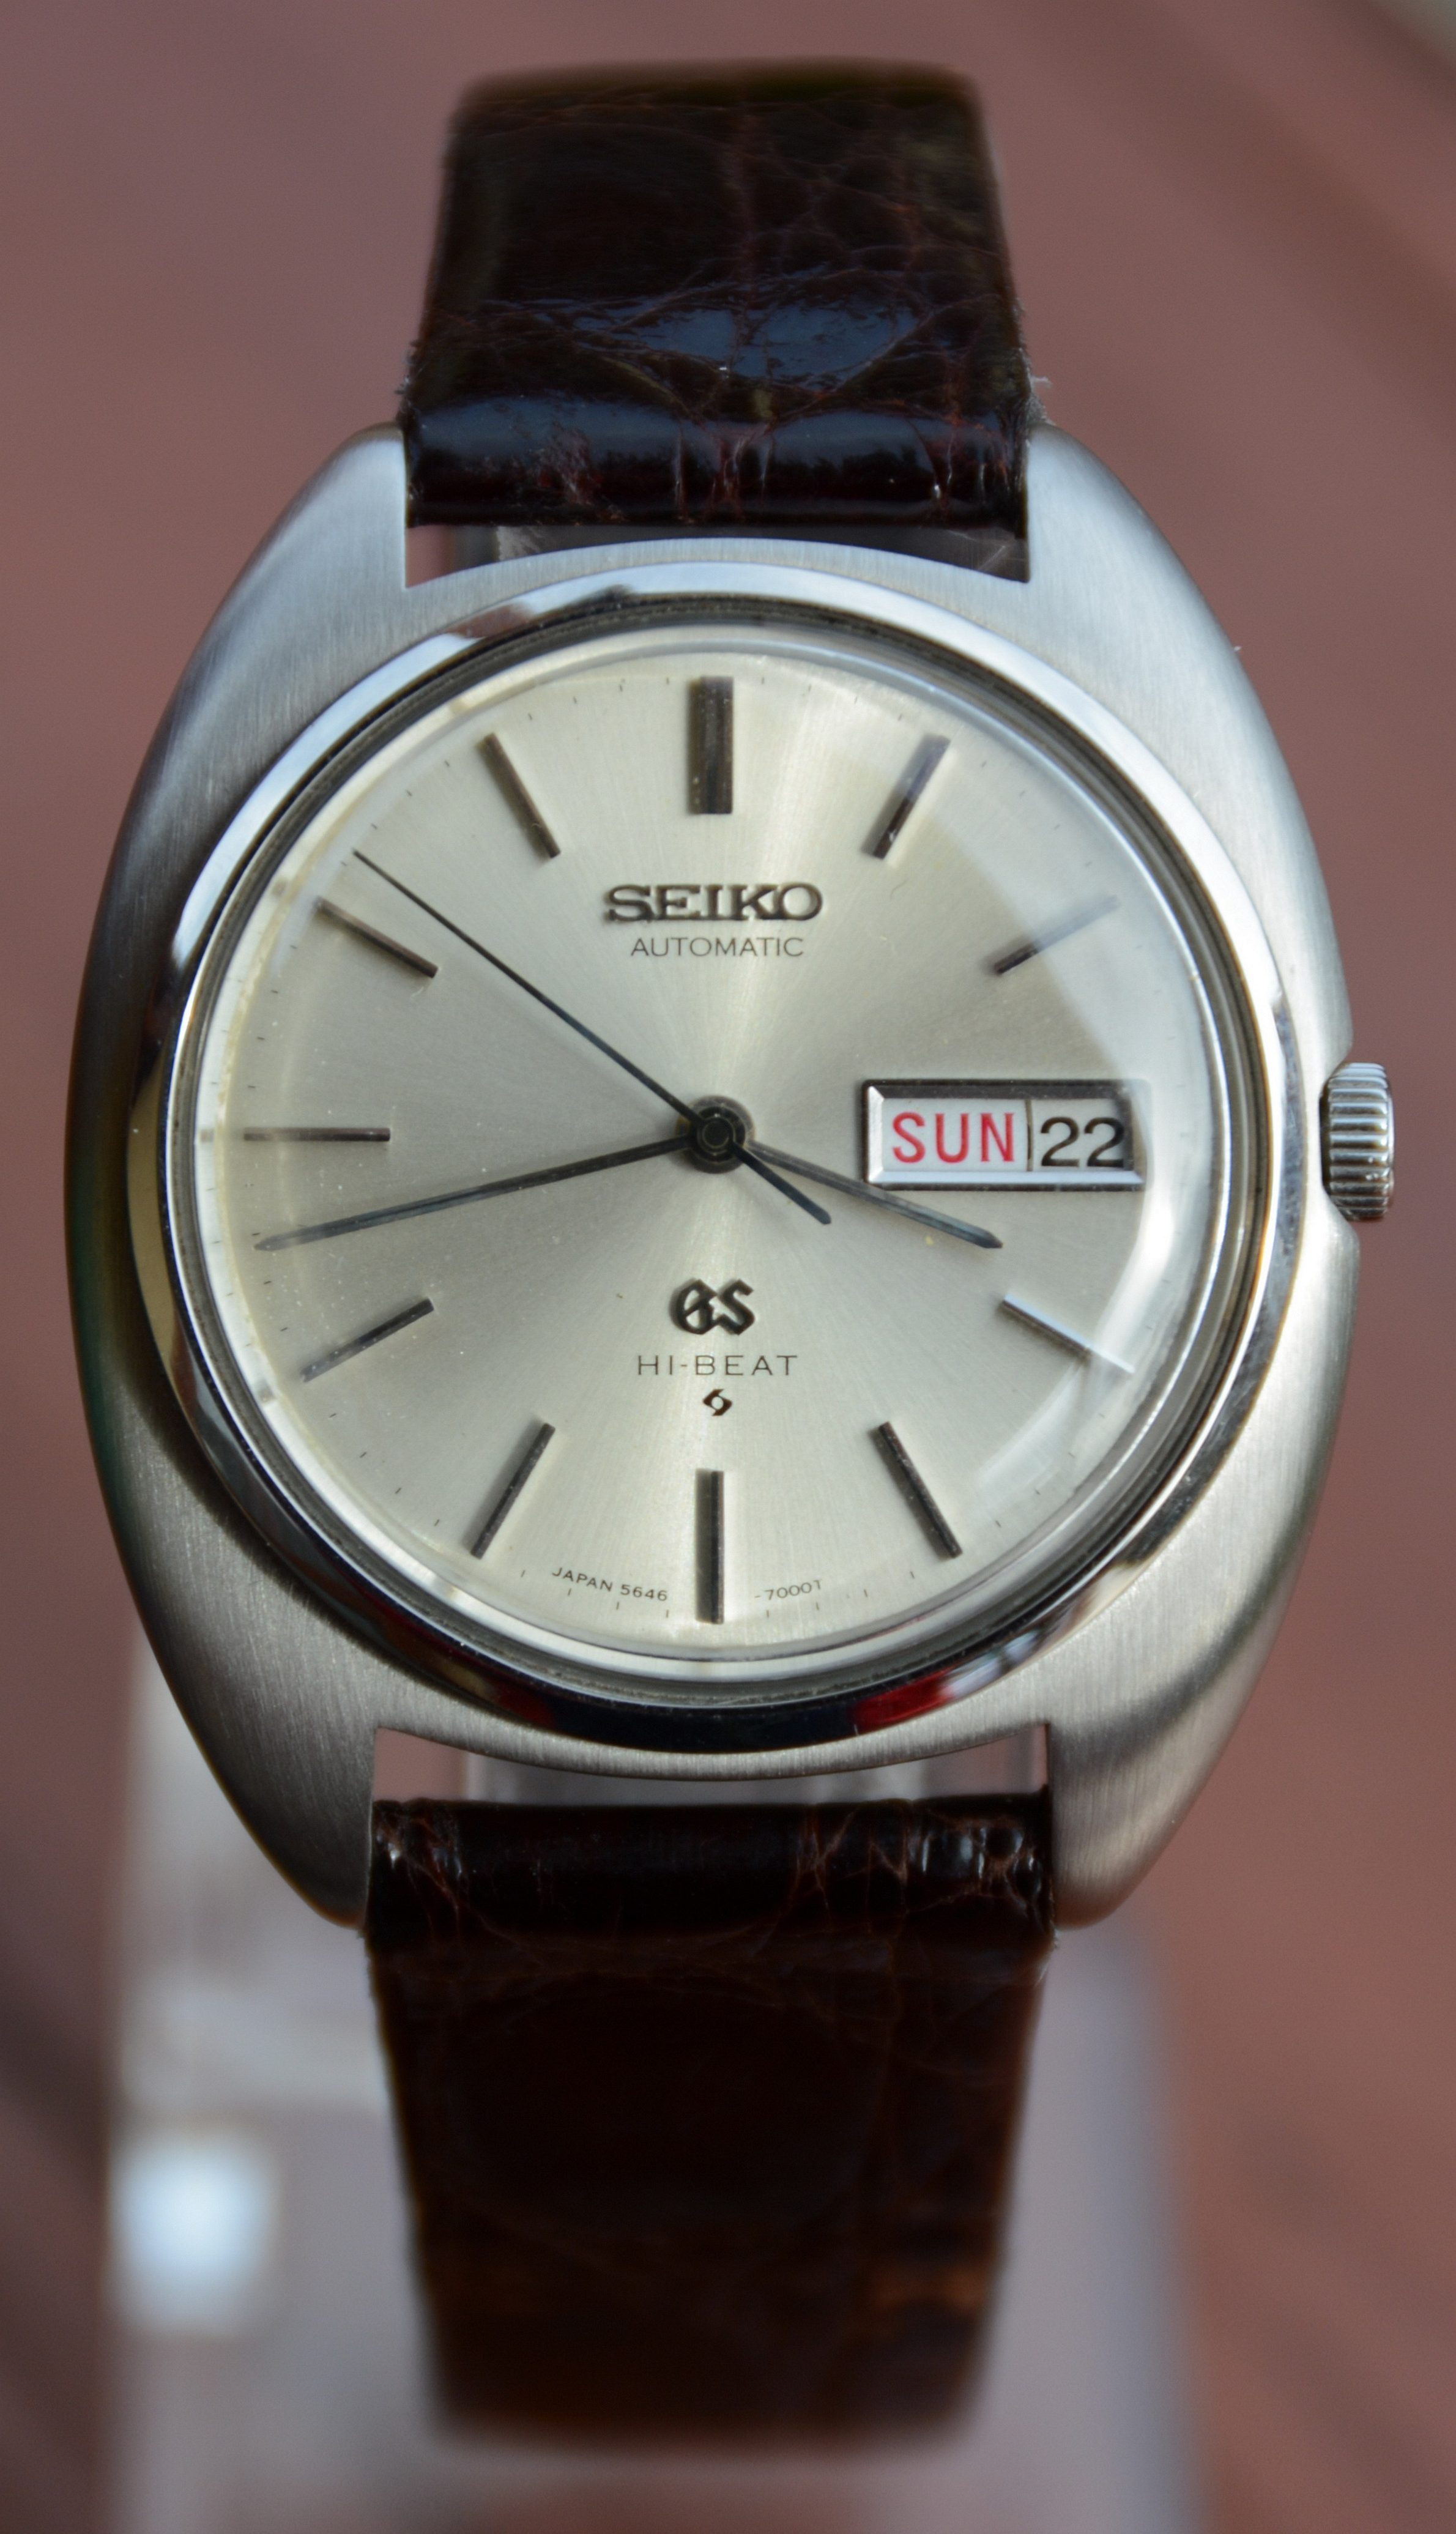 how to meausre accuracy of an autmatic watch